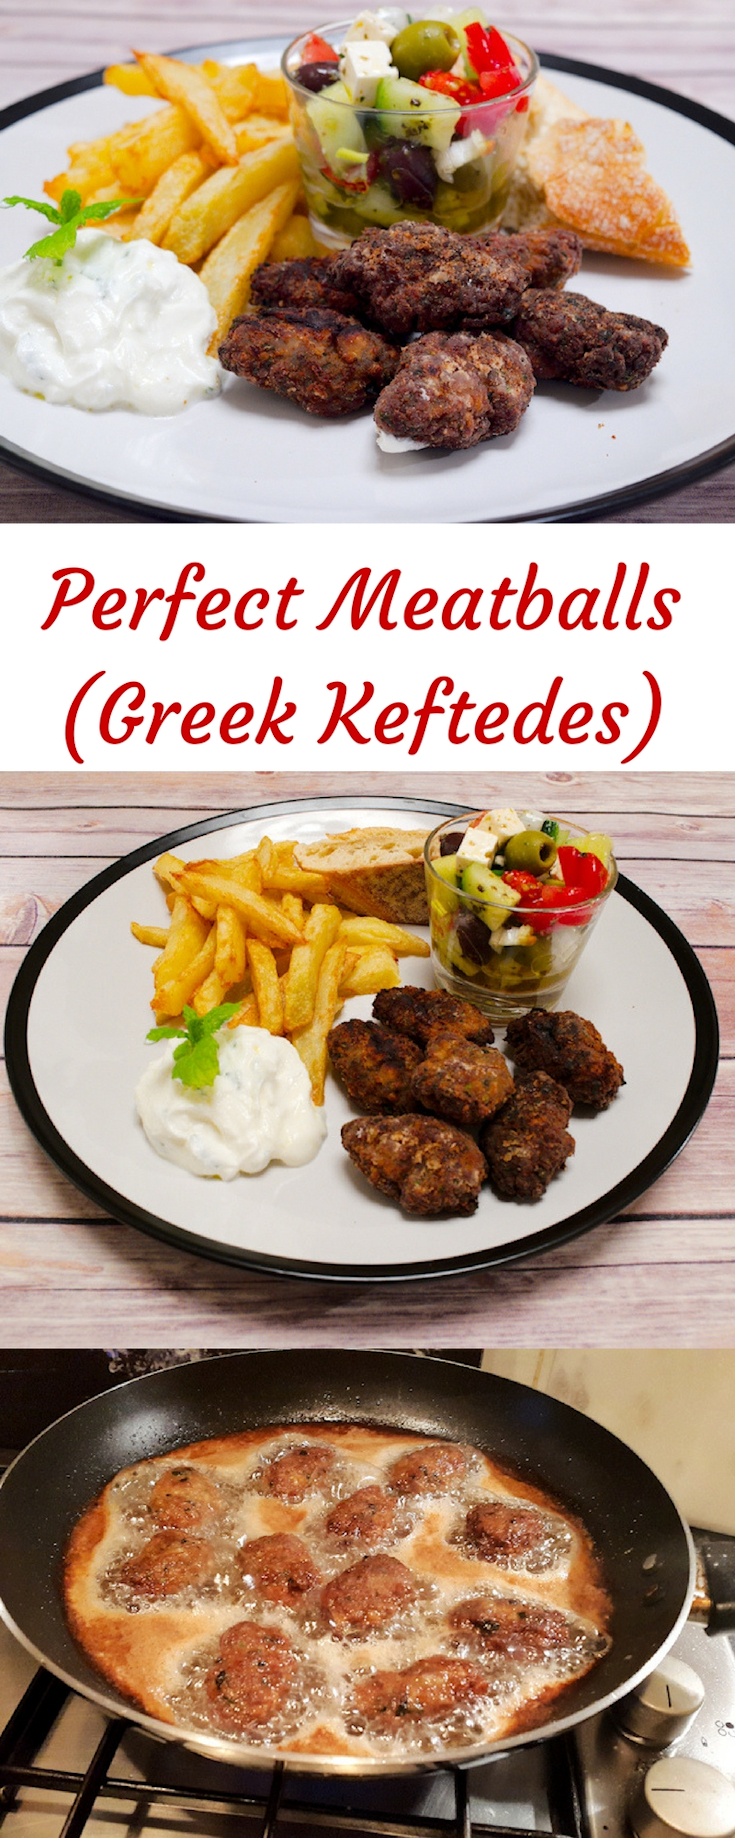 The Perfect Meatballs (Keftedes)